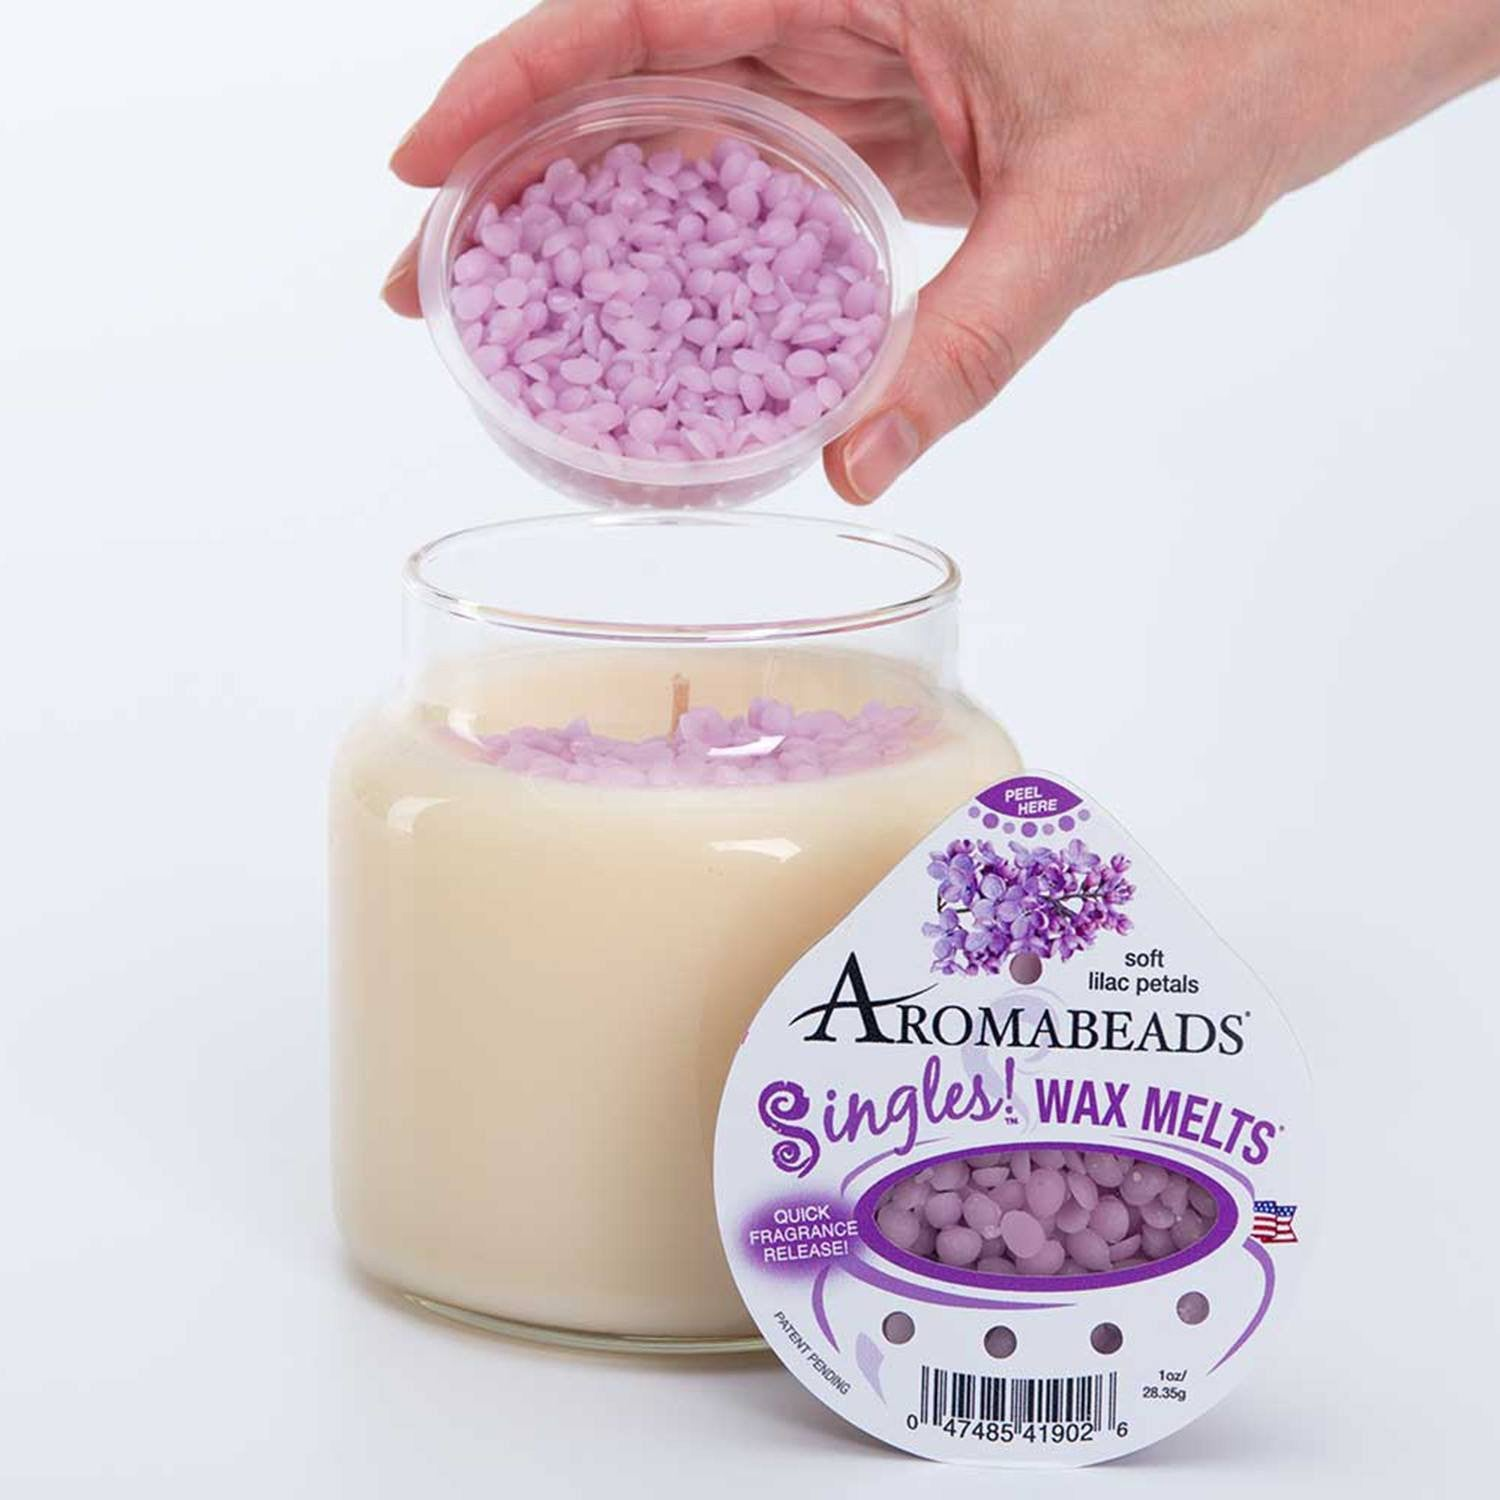 Aromabeads Singles Ember Glow Scented Wax Melts - Candlemart.com - 2